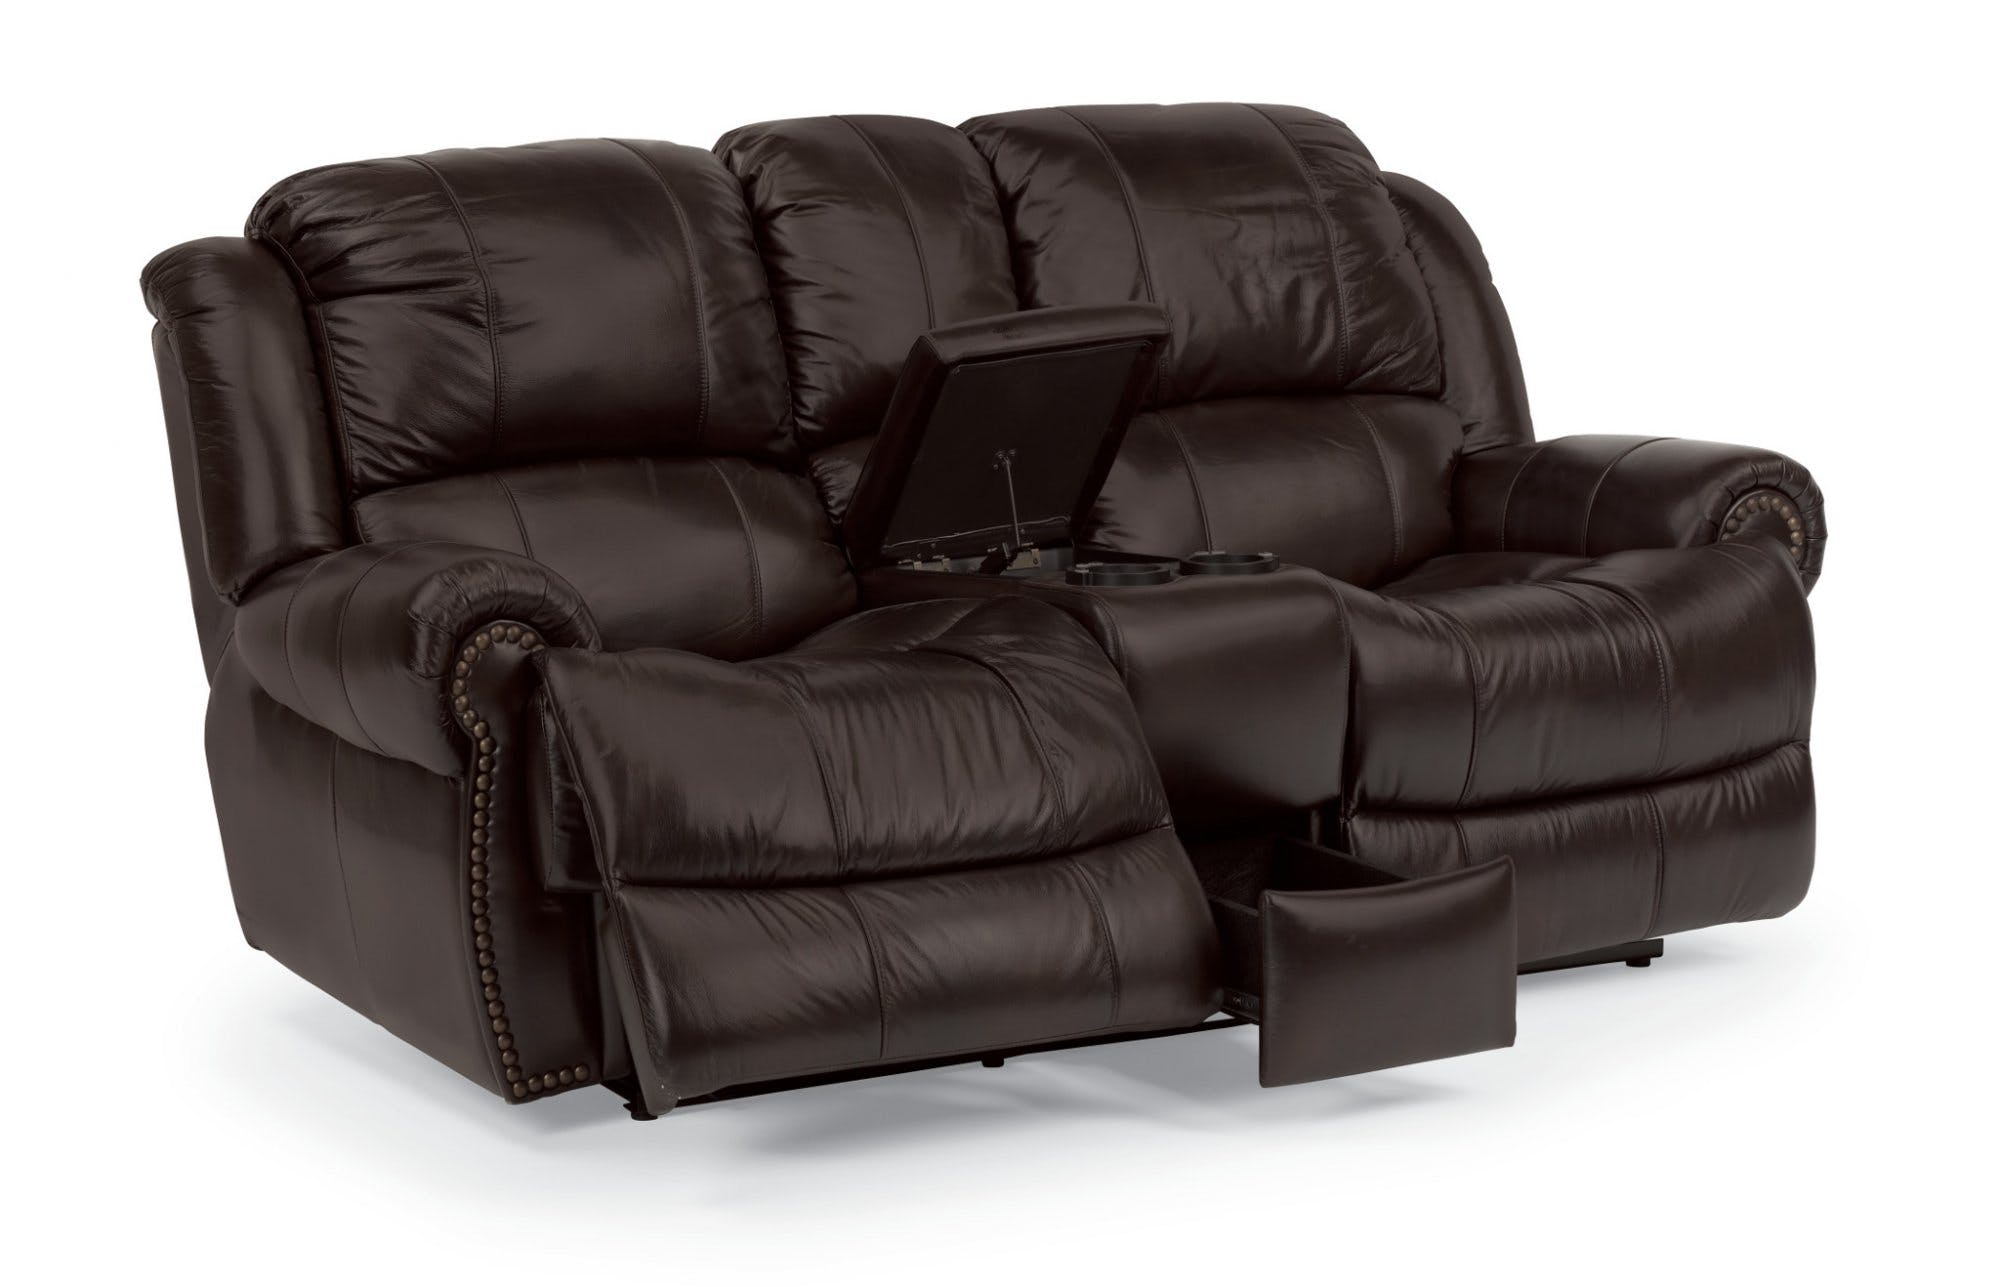 leather reclining loveseat with console ... flexsteel leather power reclining loveseat with console 1311-604p ... GAYHJKF